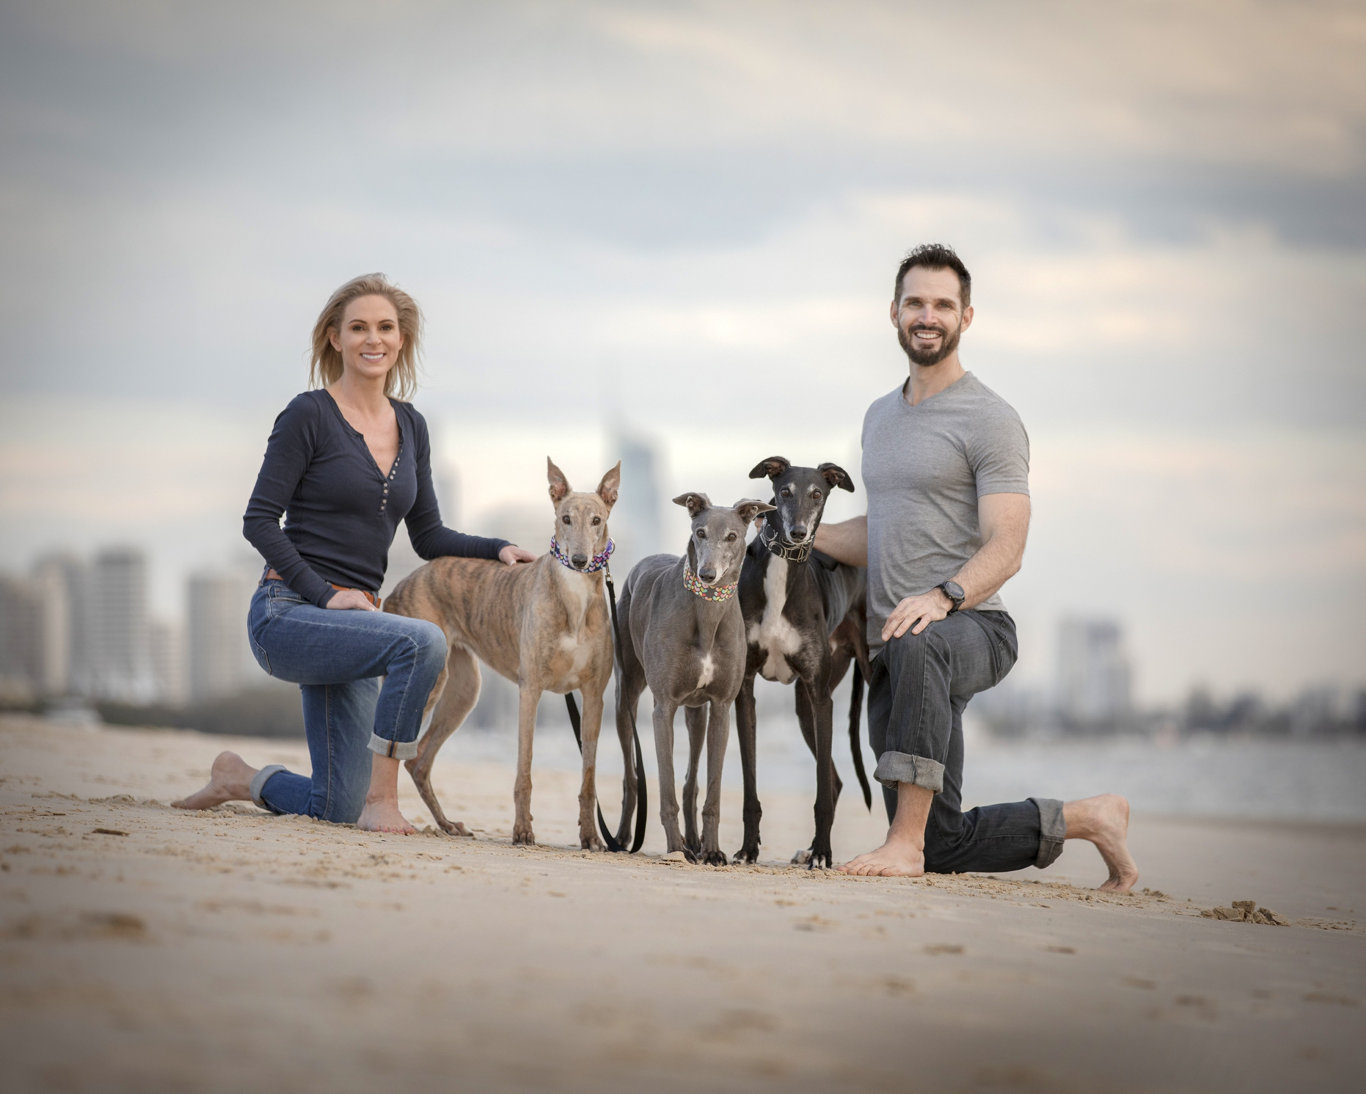 Jackie and her husband Brad with their rescued greyhounds Tia, Zoe and Teddy.